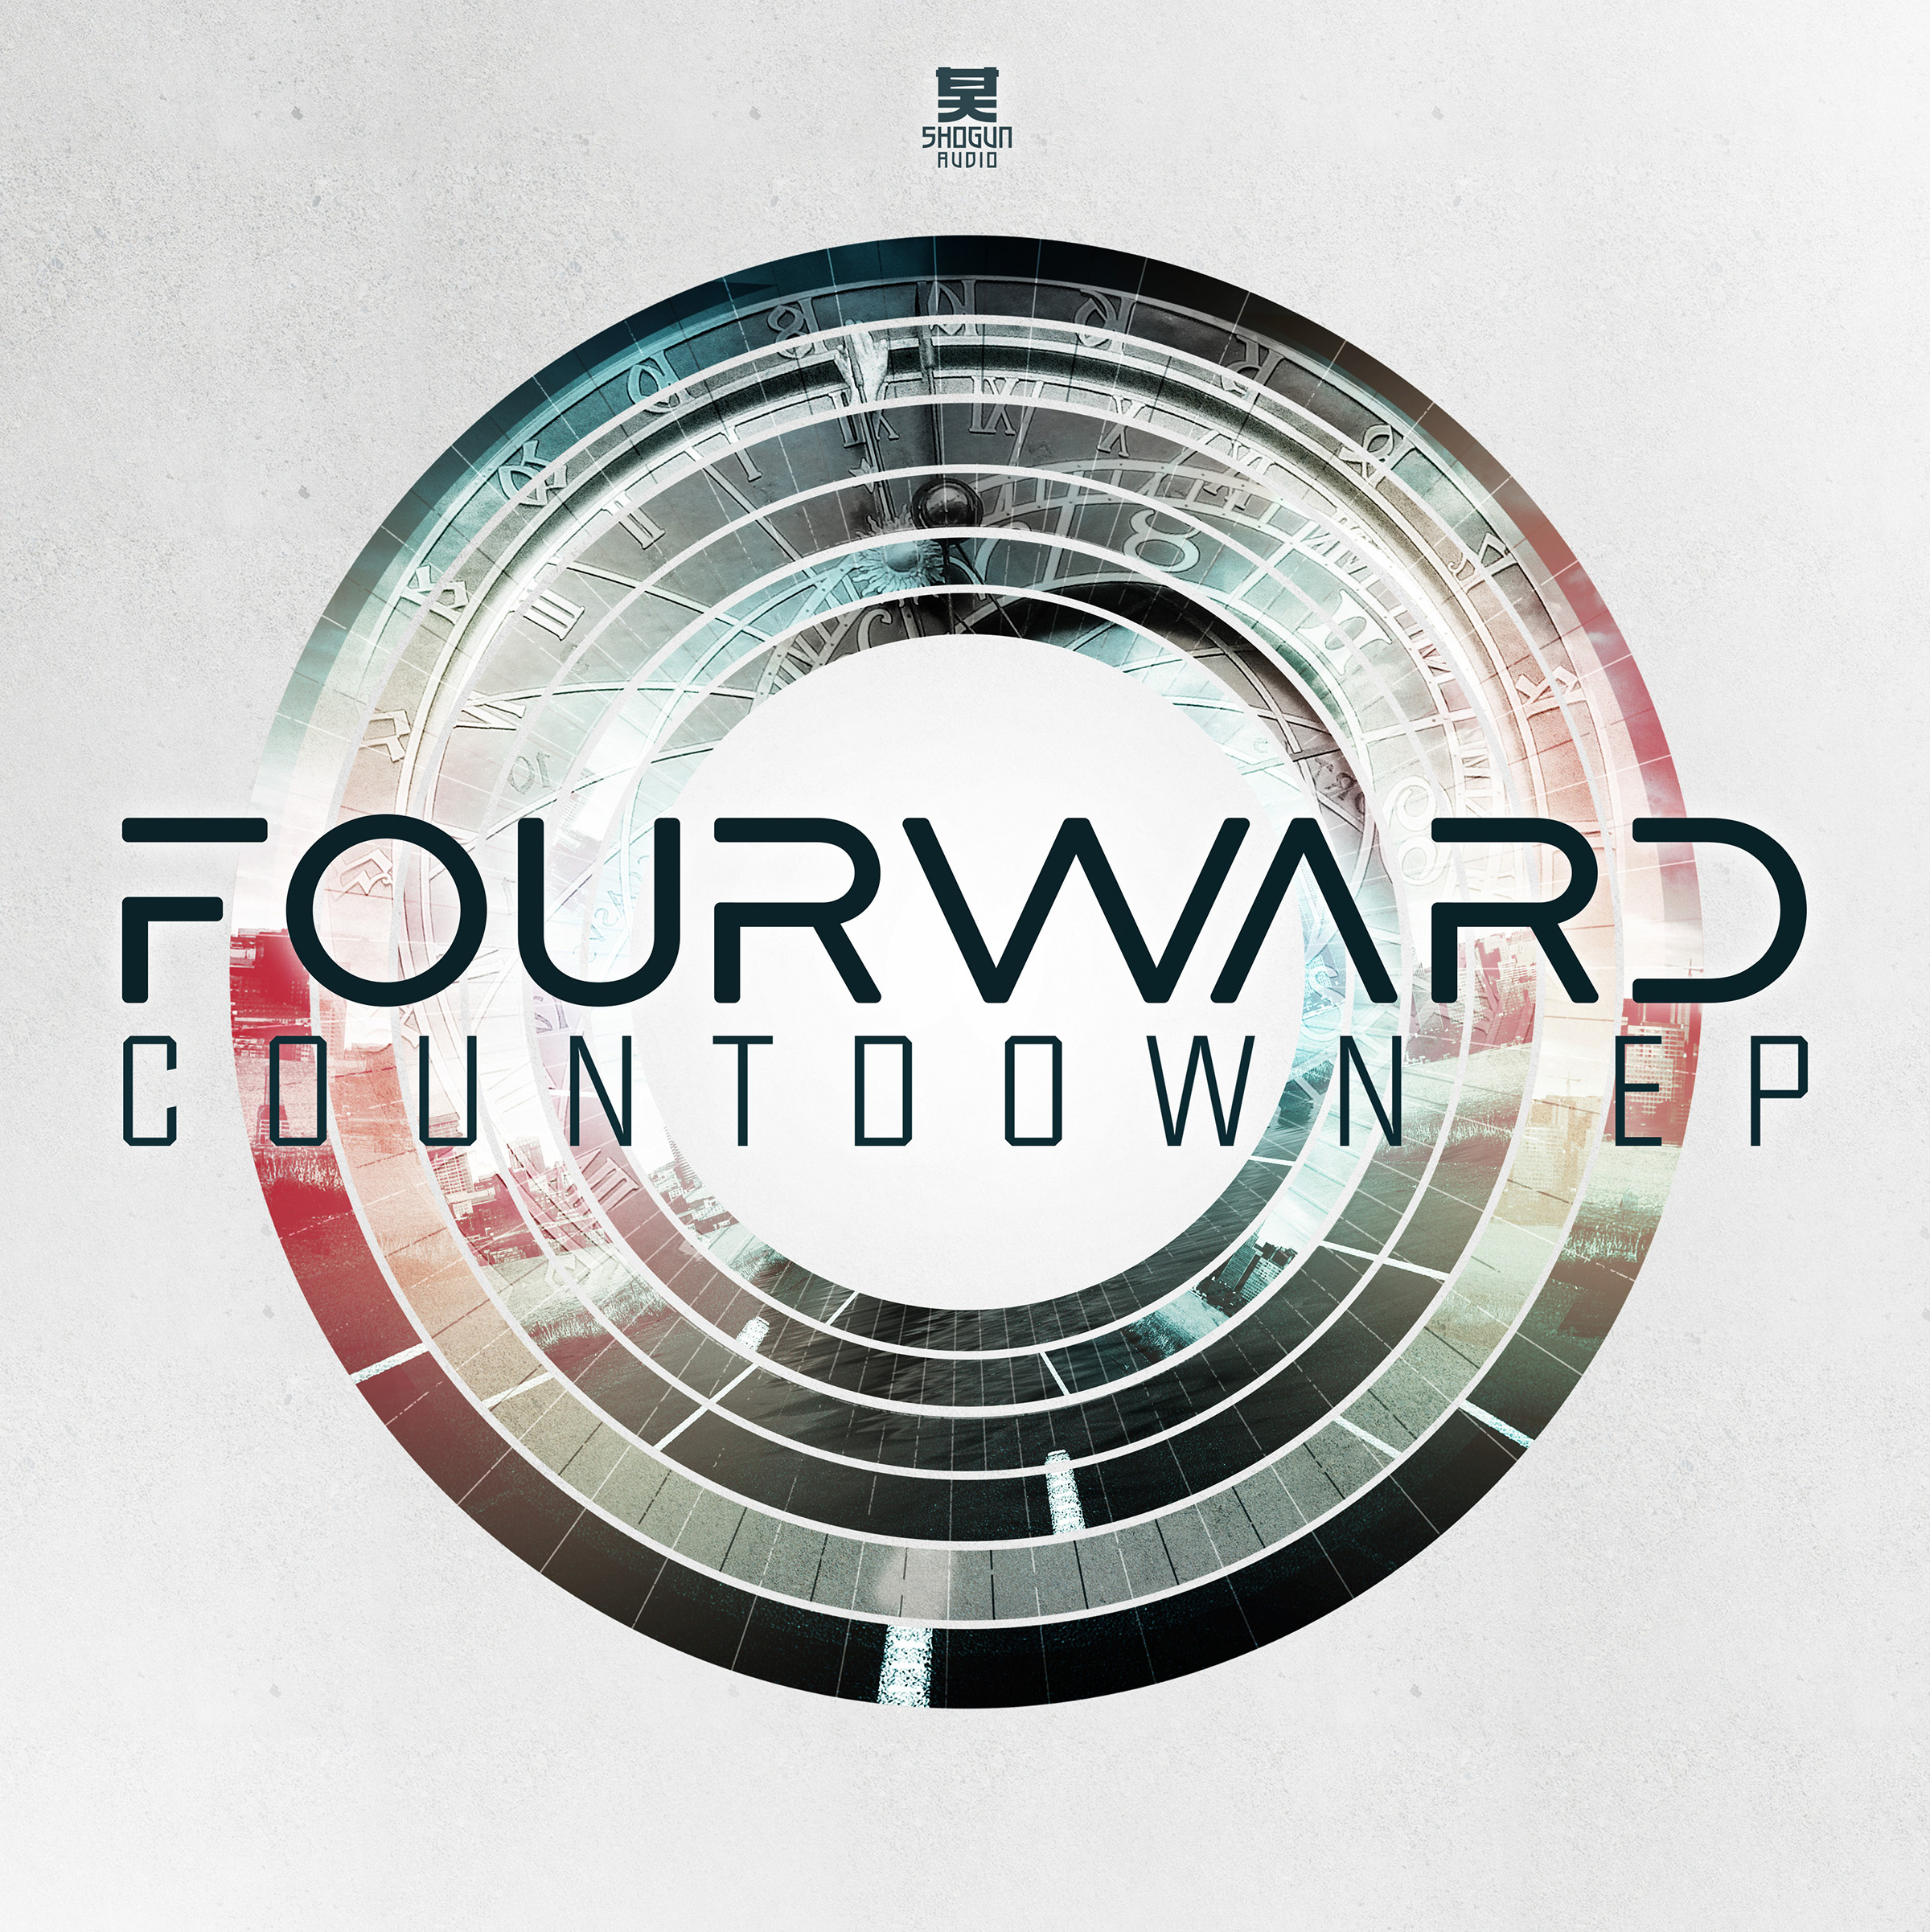 Fourward/COUNTDOWN 12""